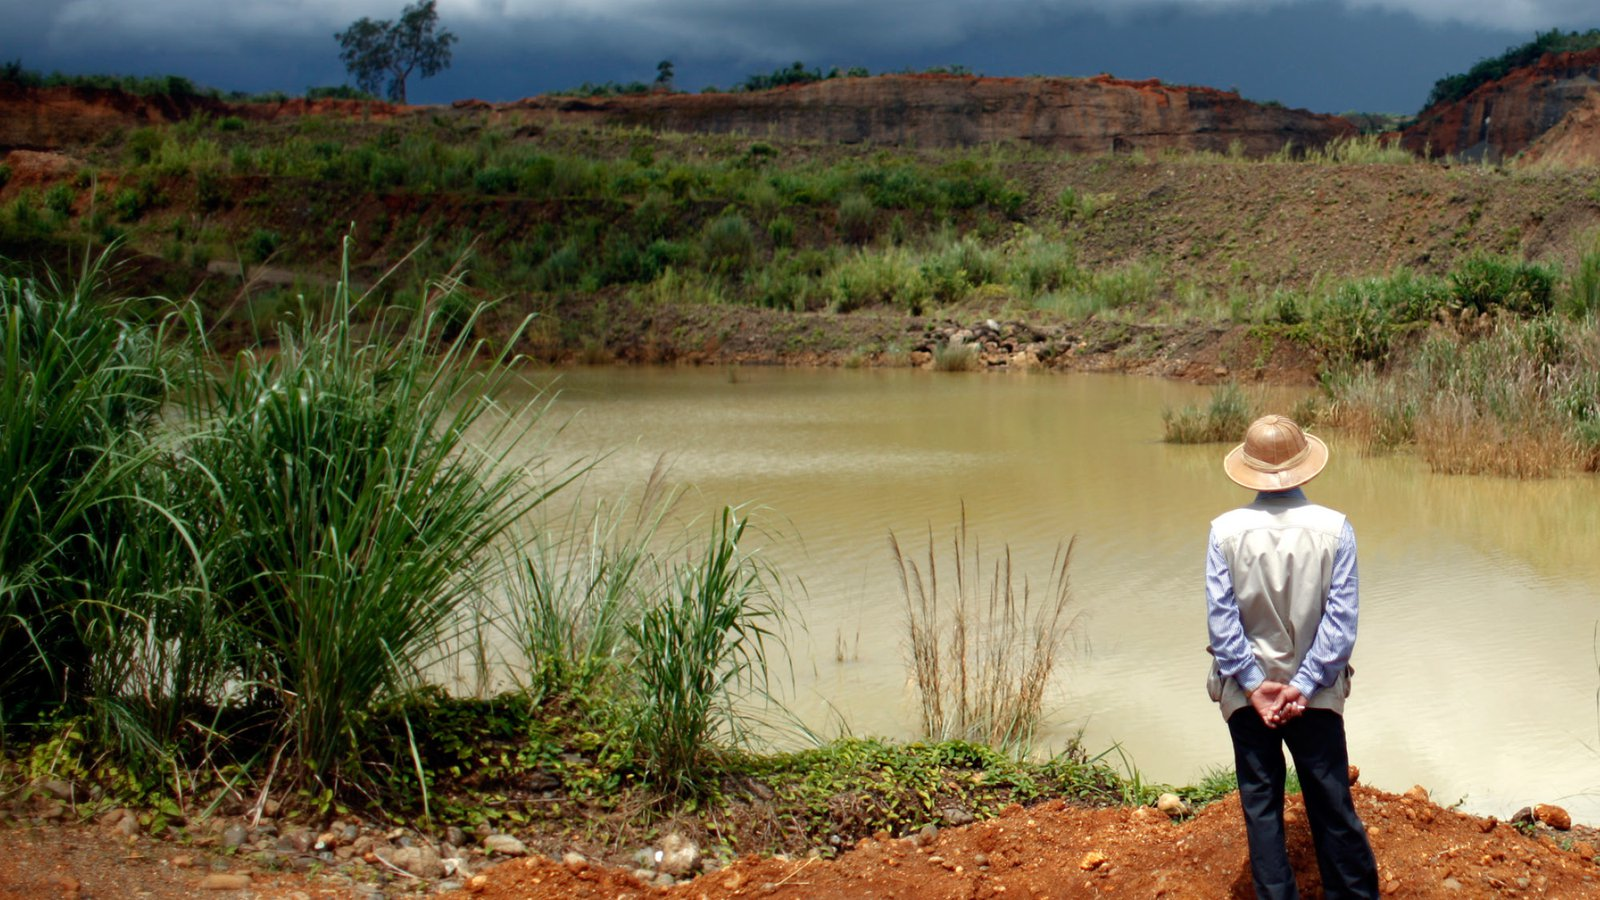 Villager looks at a company jade mining site in Lone Khin town